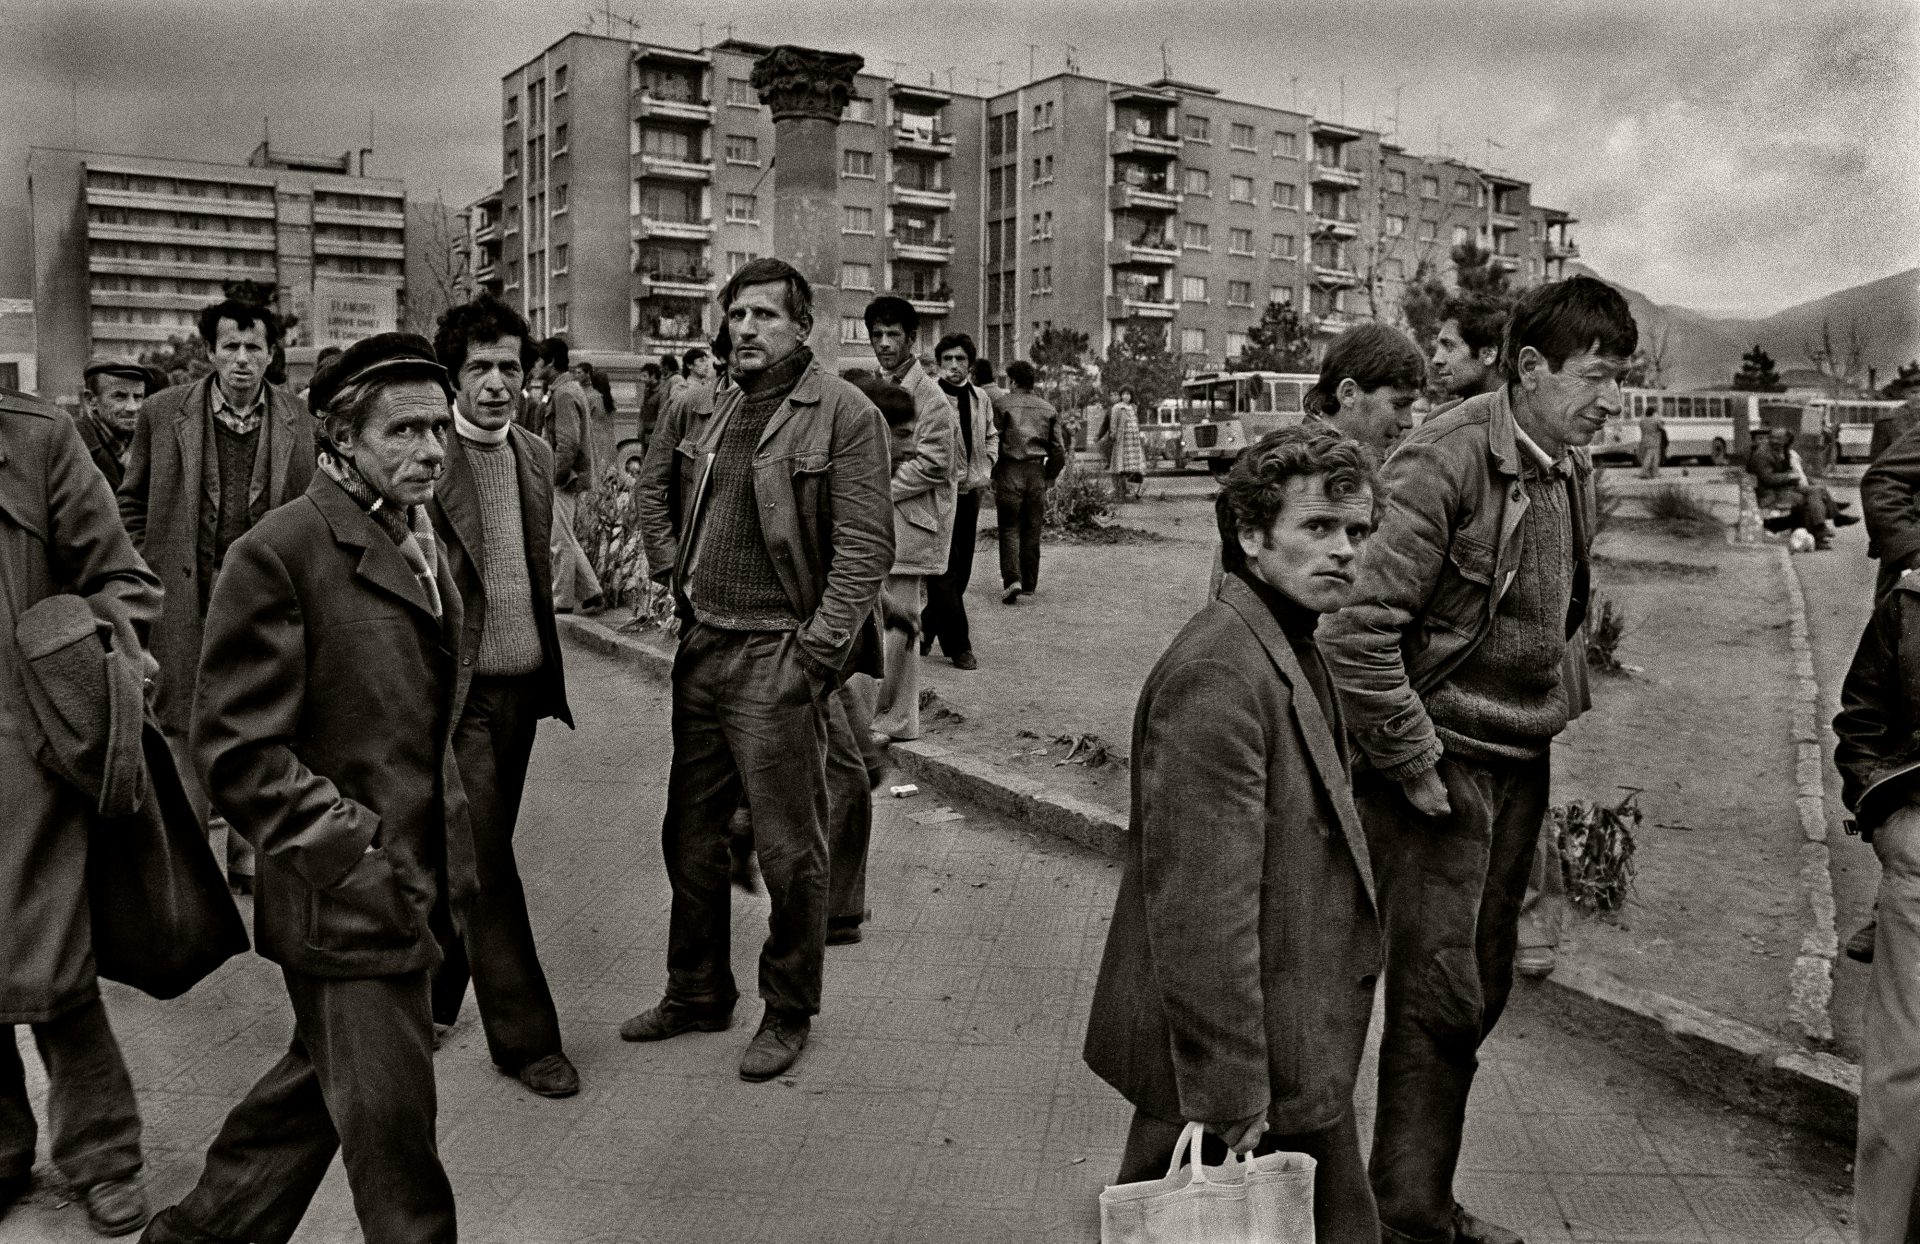 Locals in the centre of Korçë, in eastern Albania, look wary when photographed in June 1990. The communist regime remained in place, but its downfall was looming. Suspicion of foreigners was encouraged and anyone seen in conversation with them was questioned by the Sigurimi  Photo: Pictures Ltd./Corbis via Getty Images